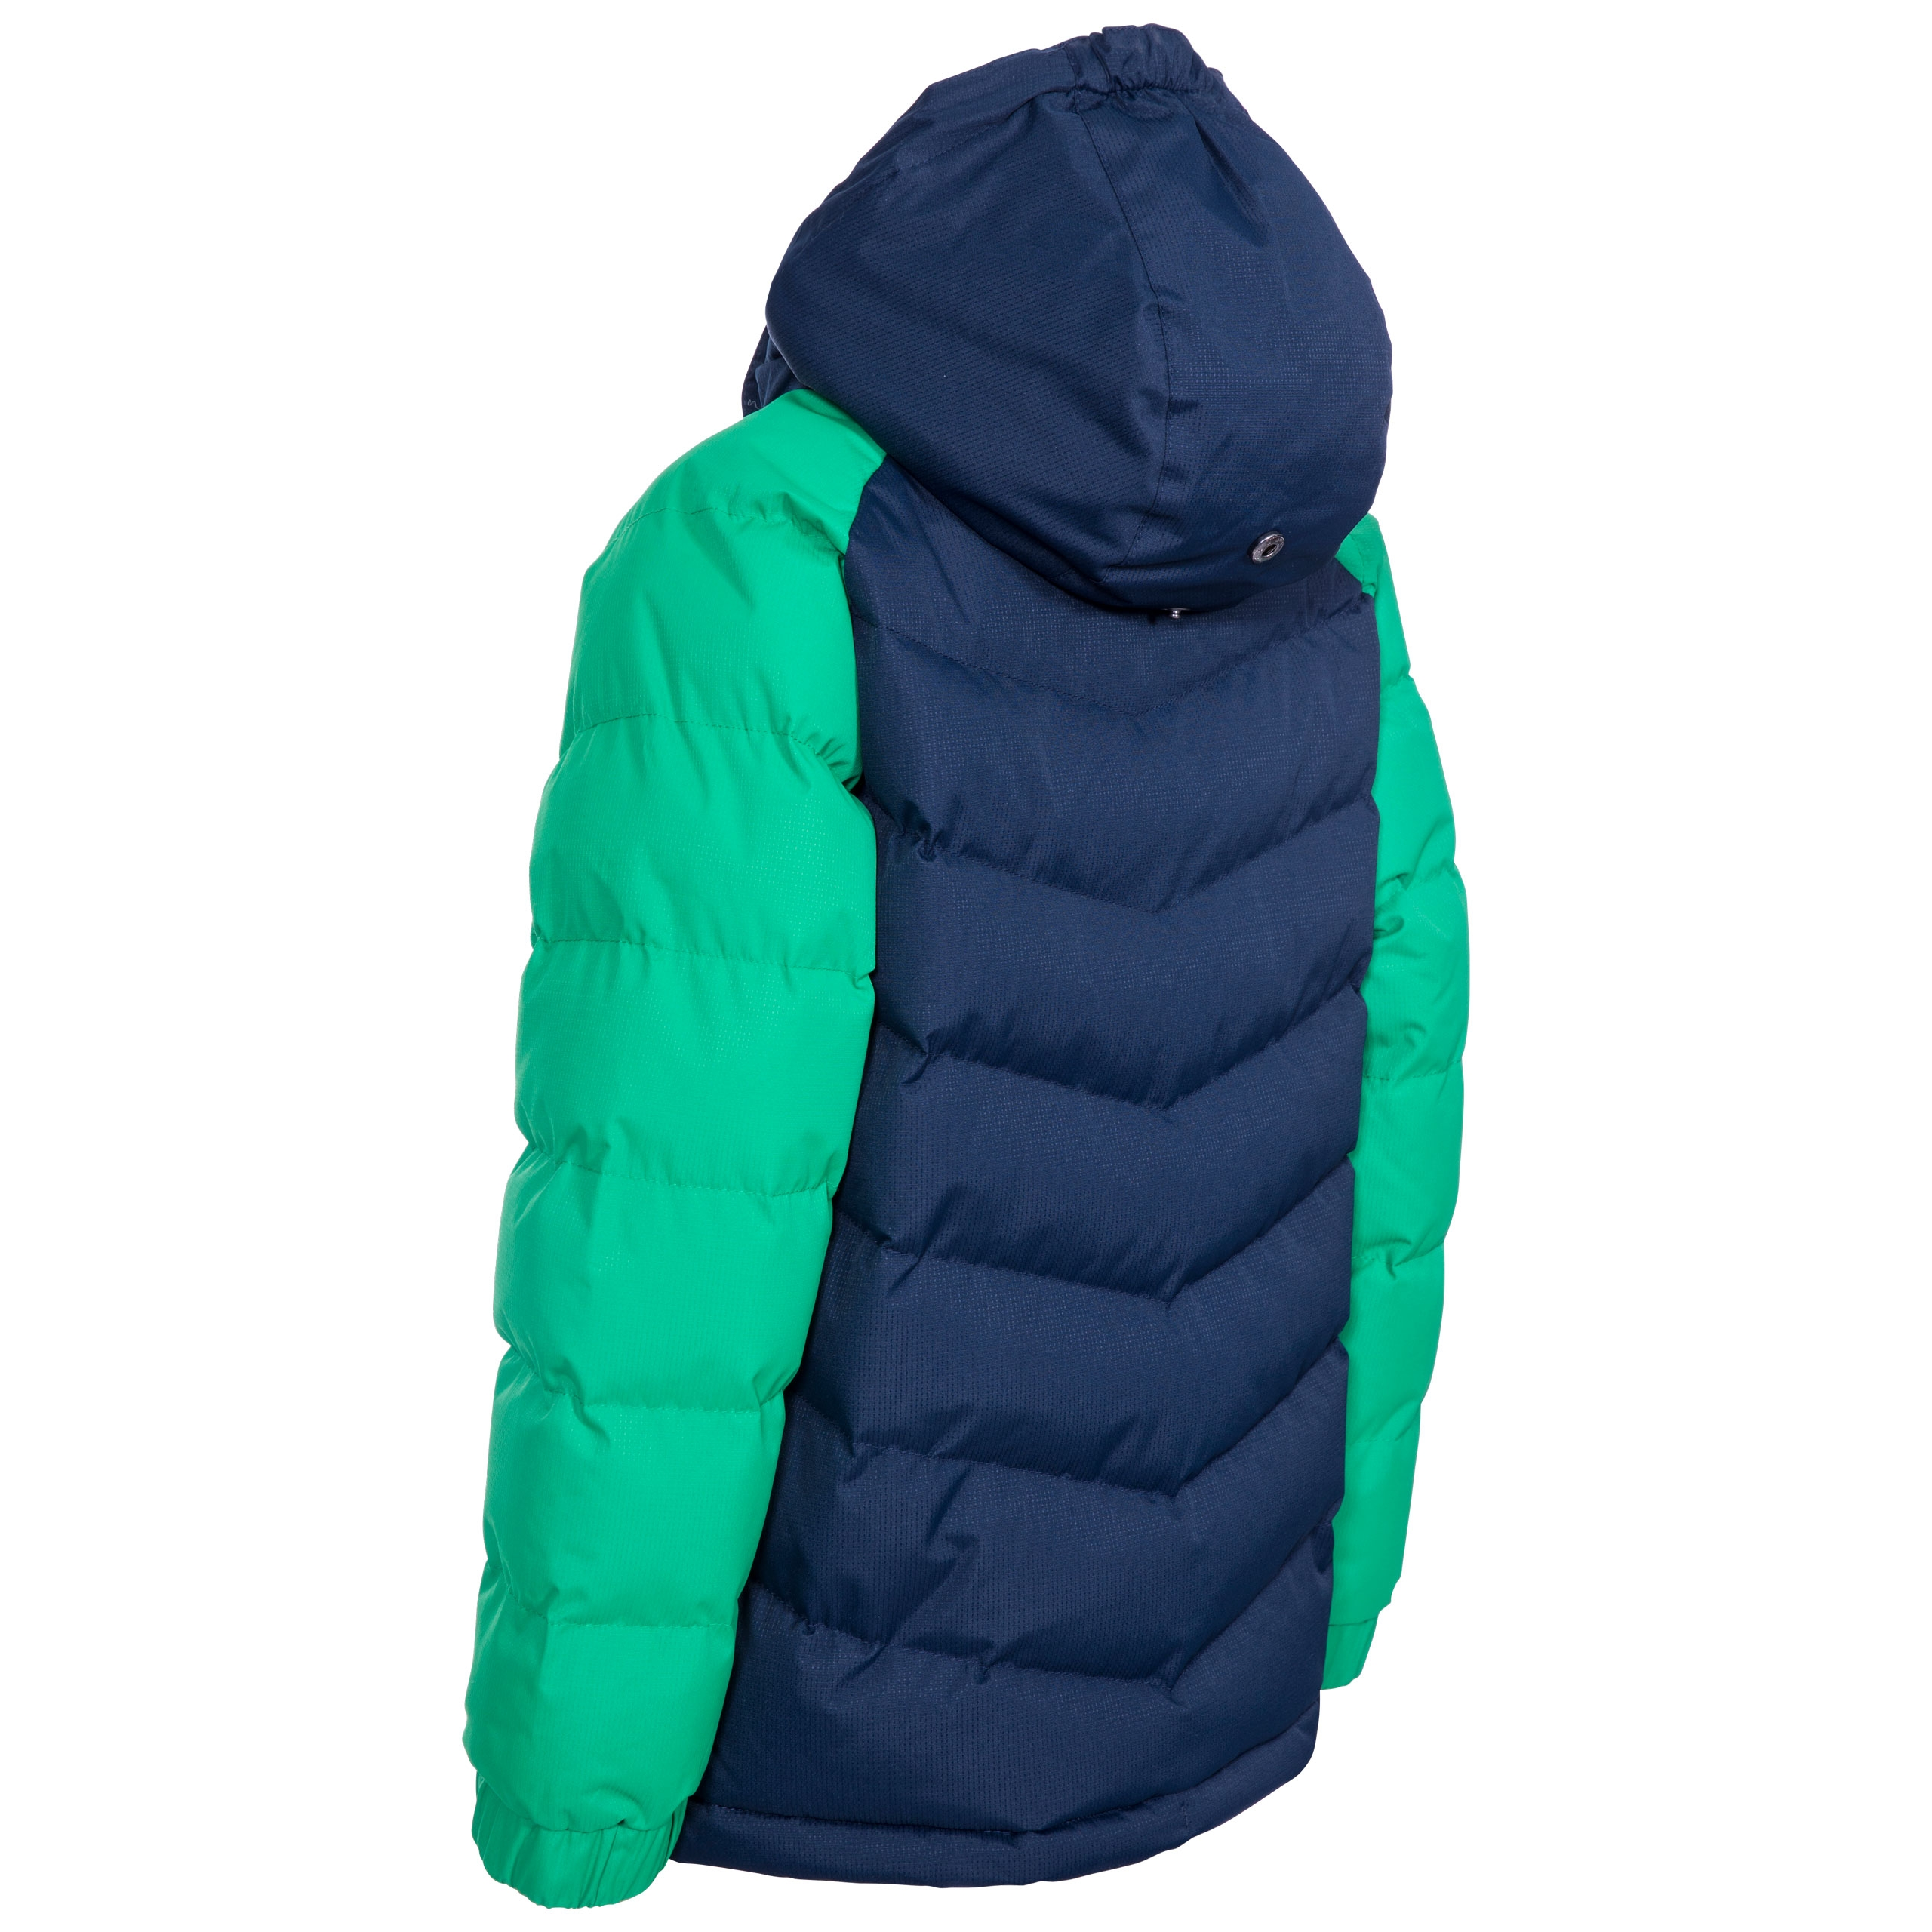 Trespass-Sidespin-Boys-Blue-Water-Resistant-Jacket-Padded-School-Insulated-Coat thumbnail 8